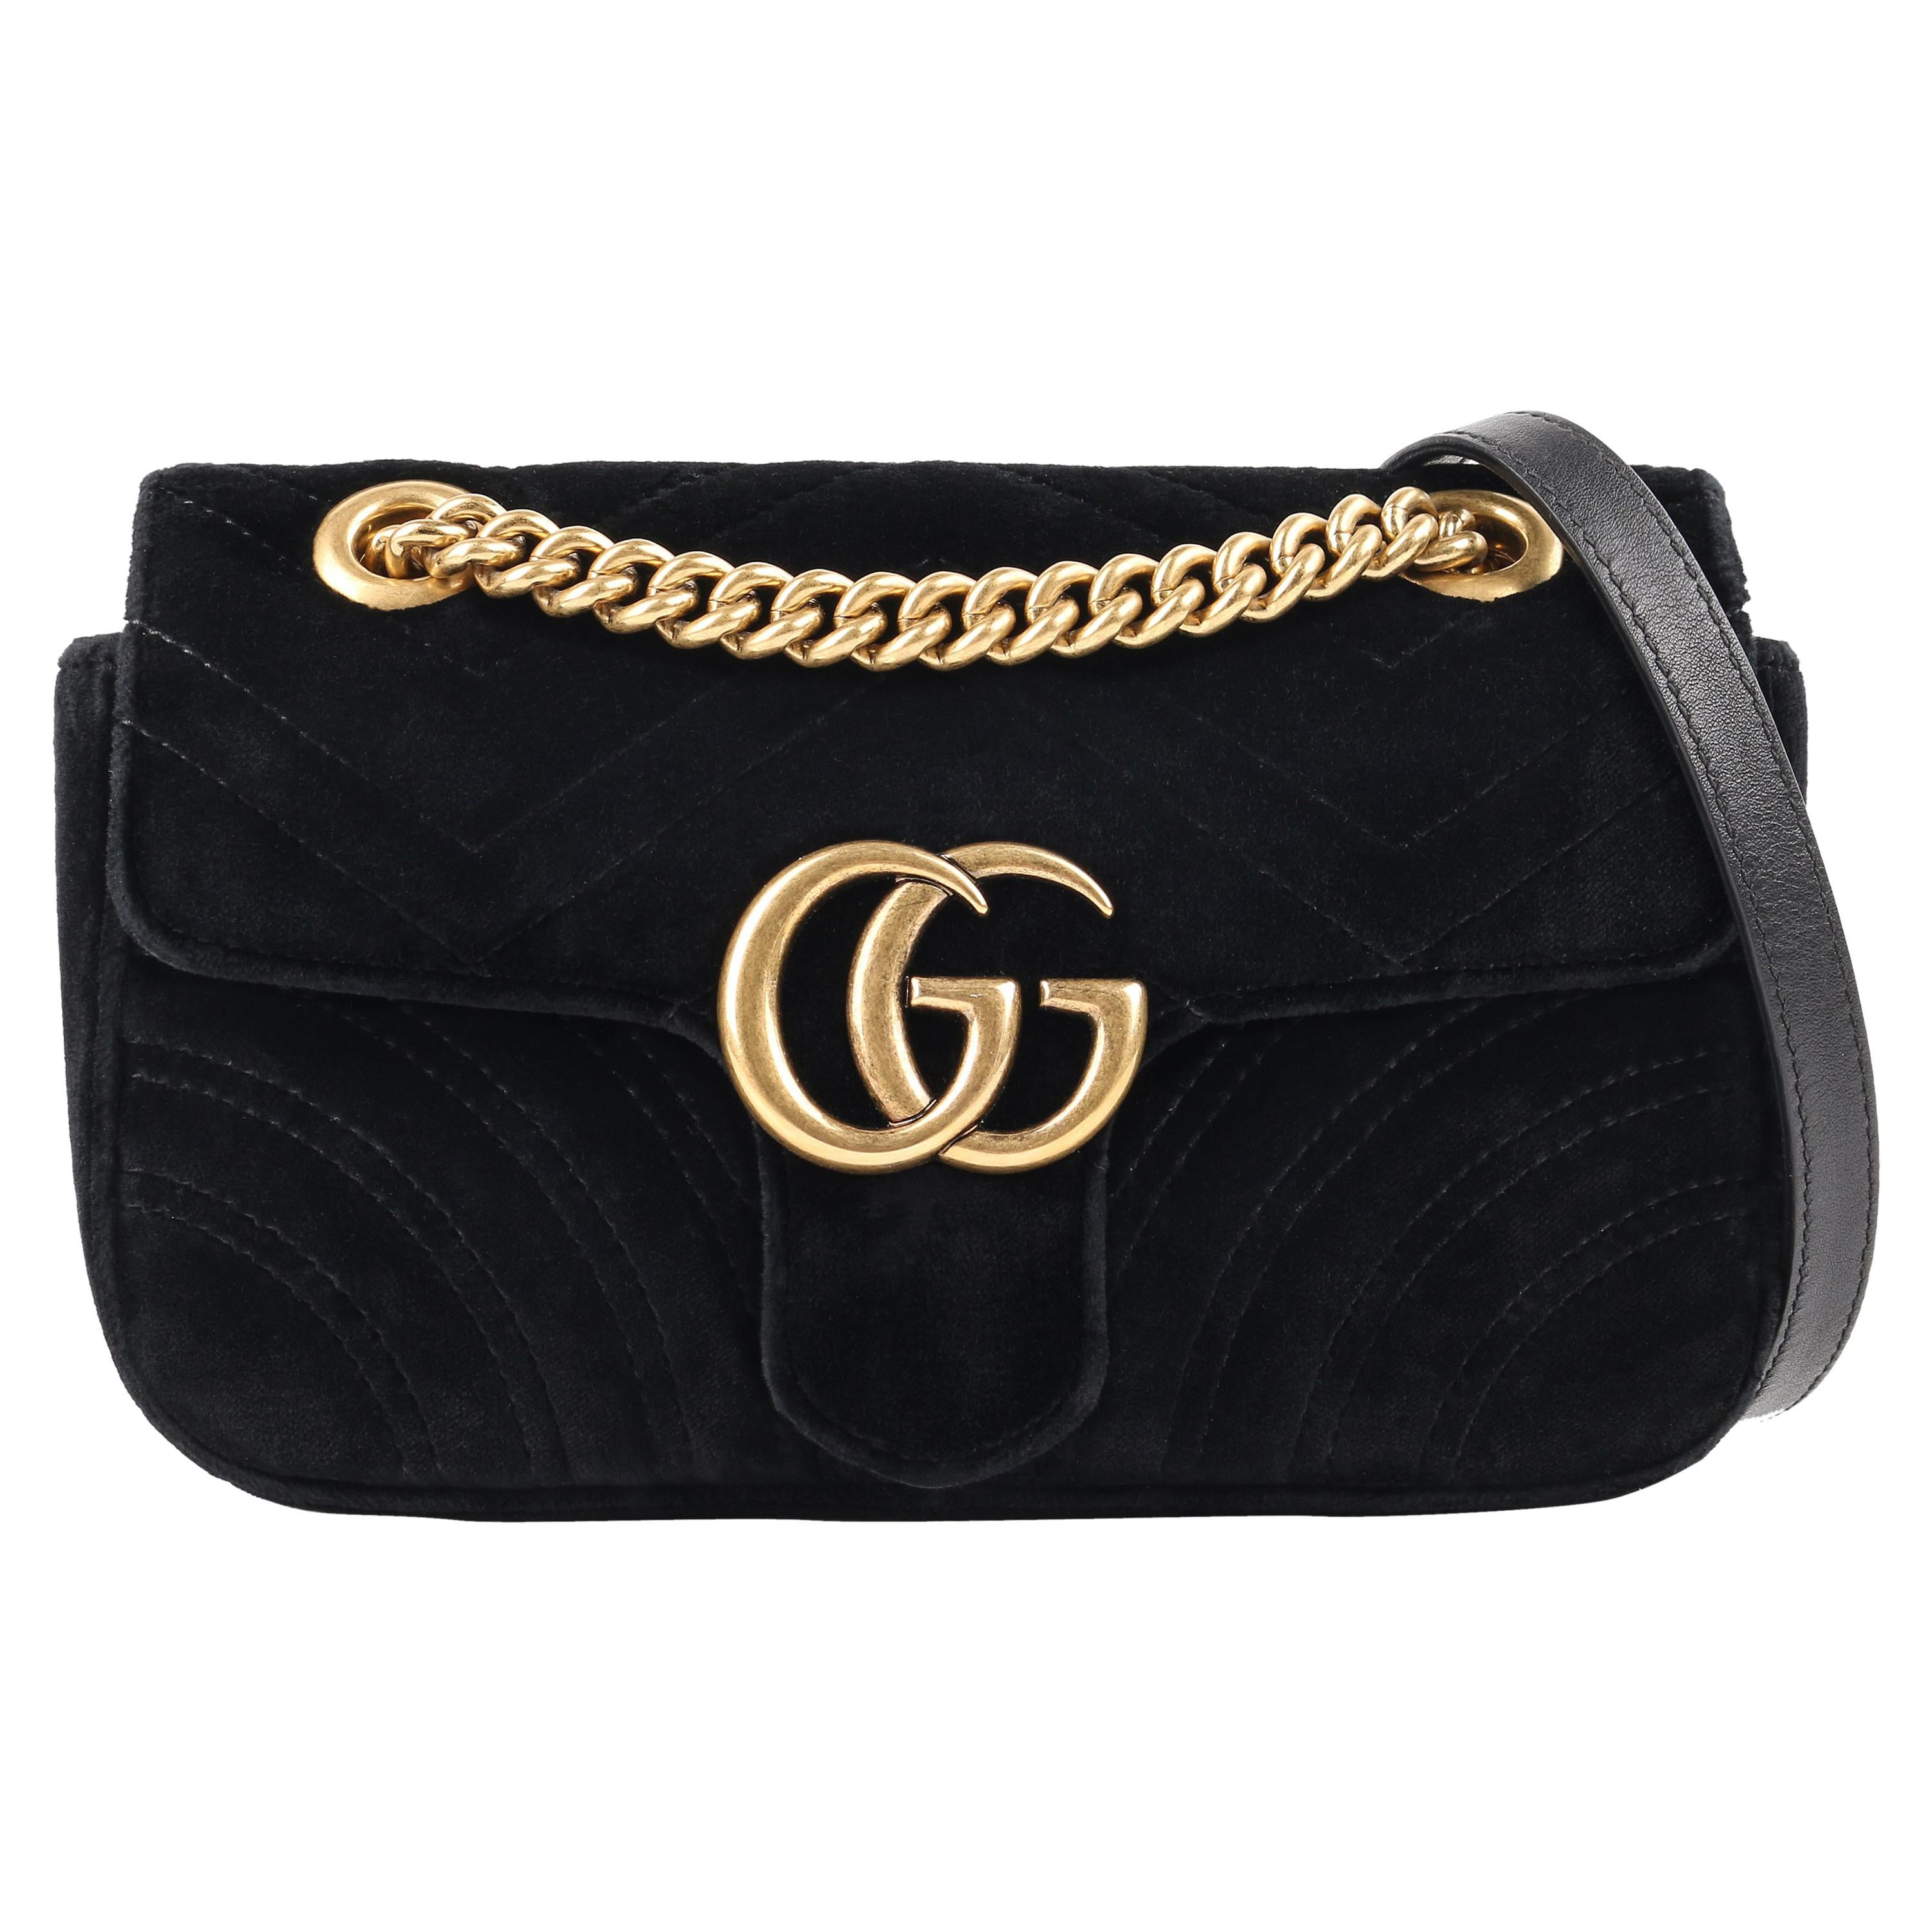 bb9bbb01de39 Black Crossbody Bags and Messenger Bags at 1stdibs - Page 2